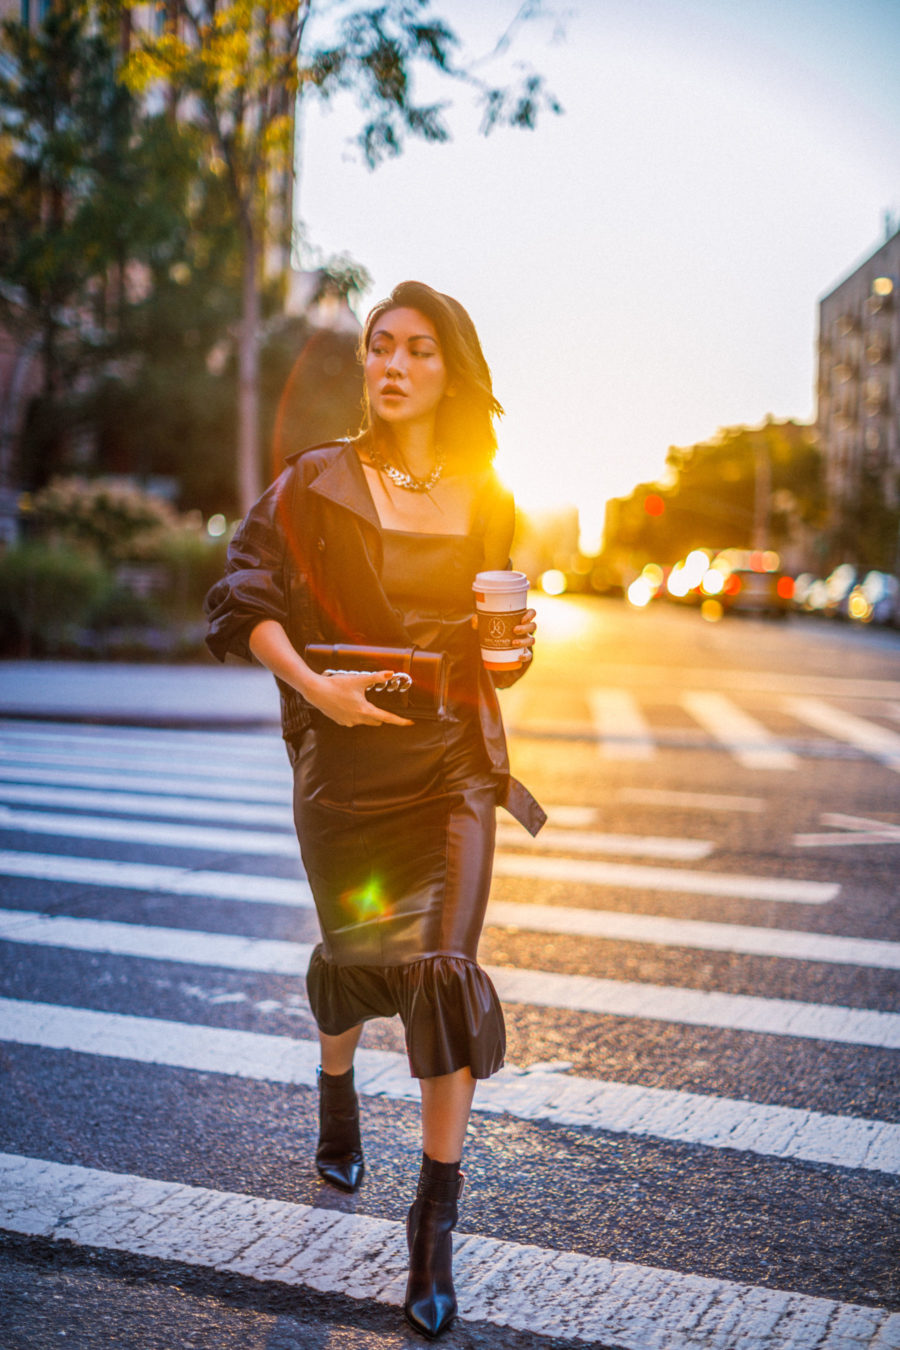 Leather Jacket Styles Everyone Needs in Their Wardrobe = leather outfit, brown leather jacket, leather dress, fall 2018 outfit inspiration // Notjessfashion.com